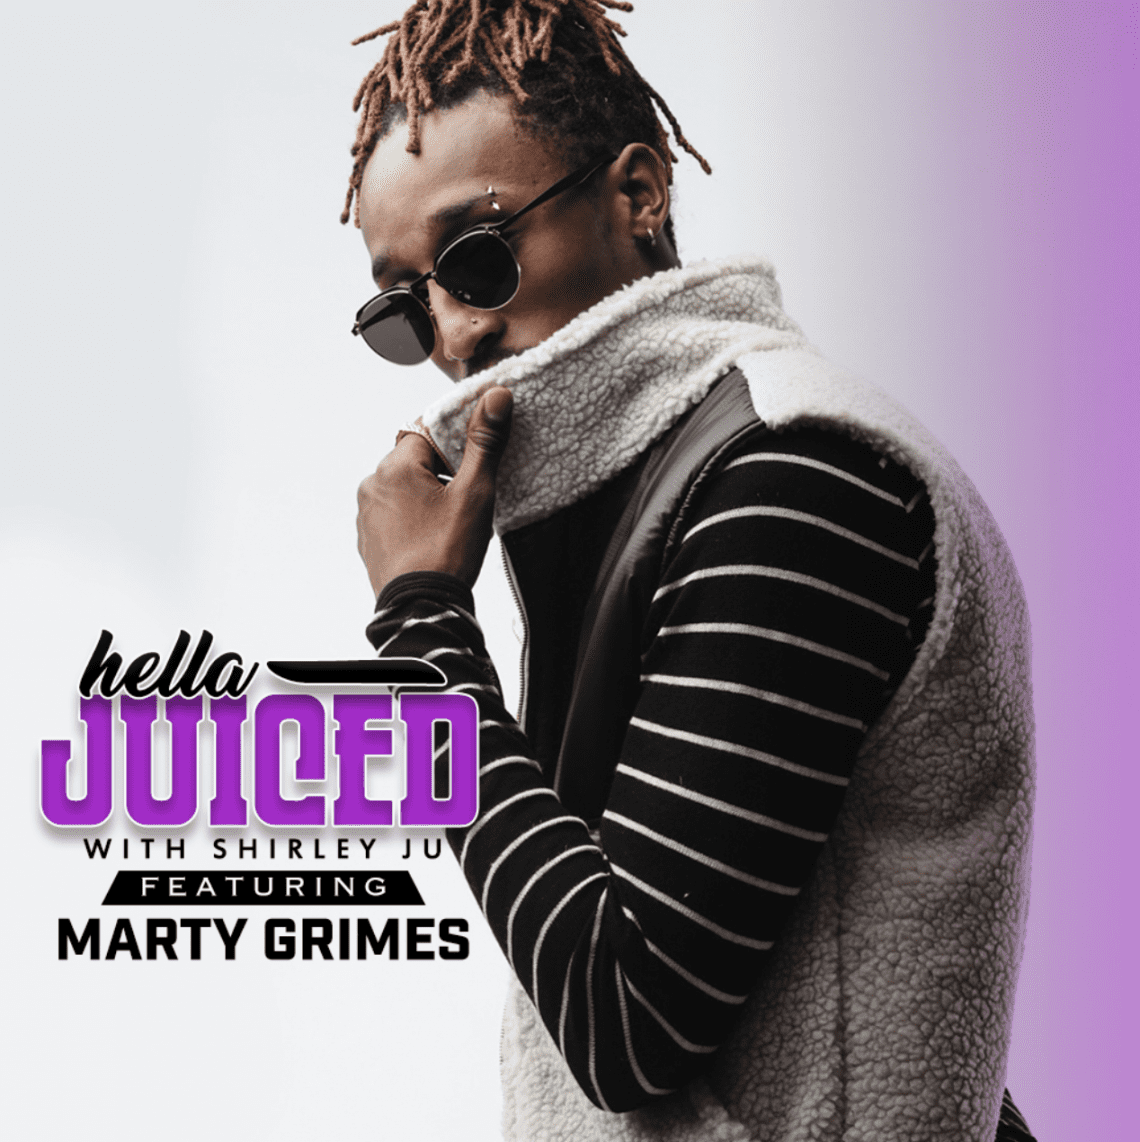 Hella Juiced: Marty Grimes